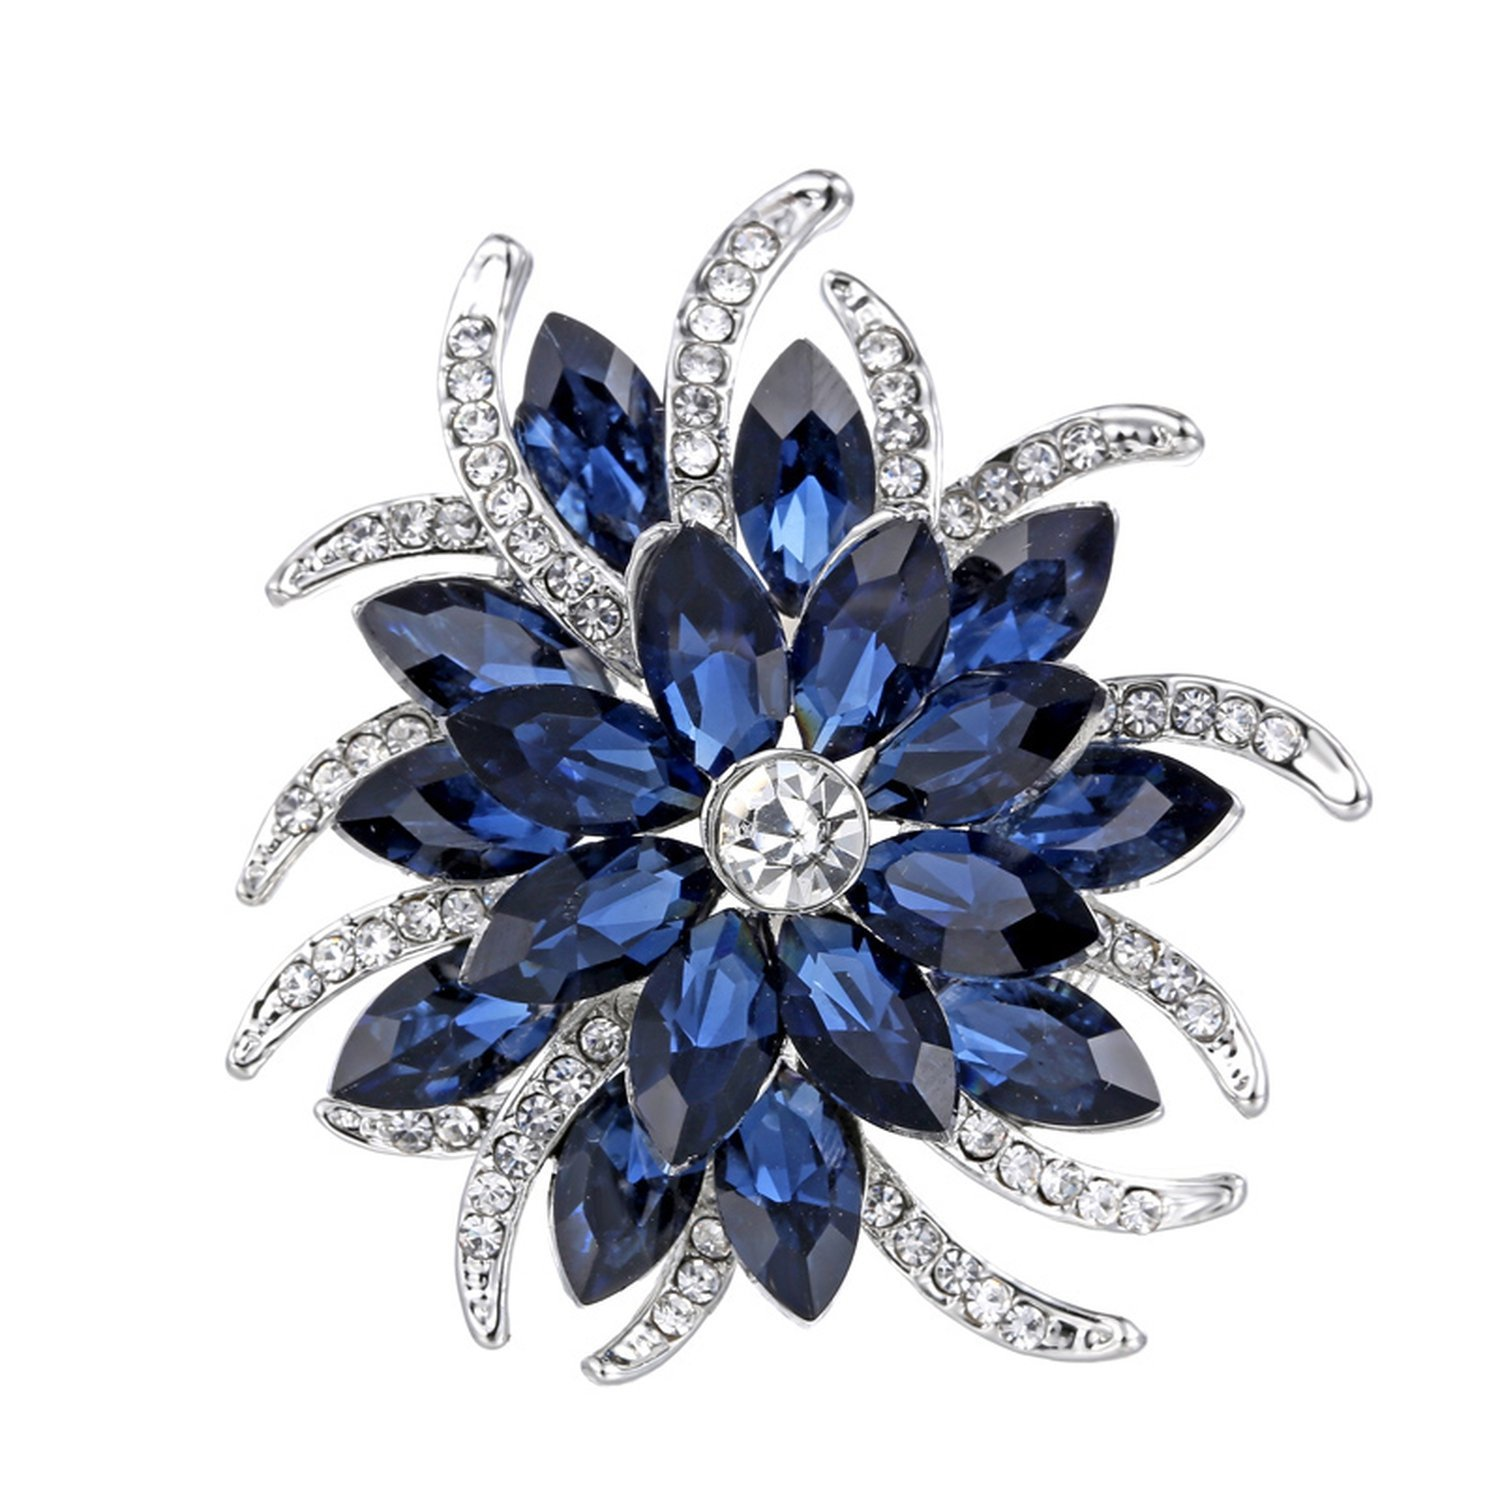 Crystal Brooch Pins Women Purple Flower Broches Stainless Steel Jewelry Fashion Wedding Party Brooch